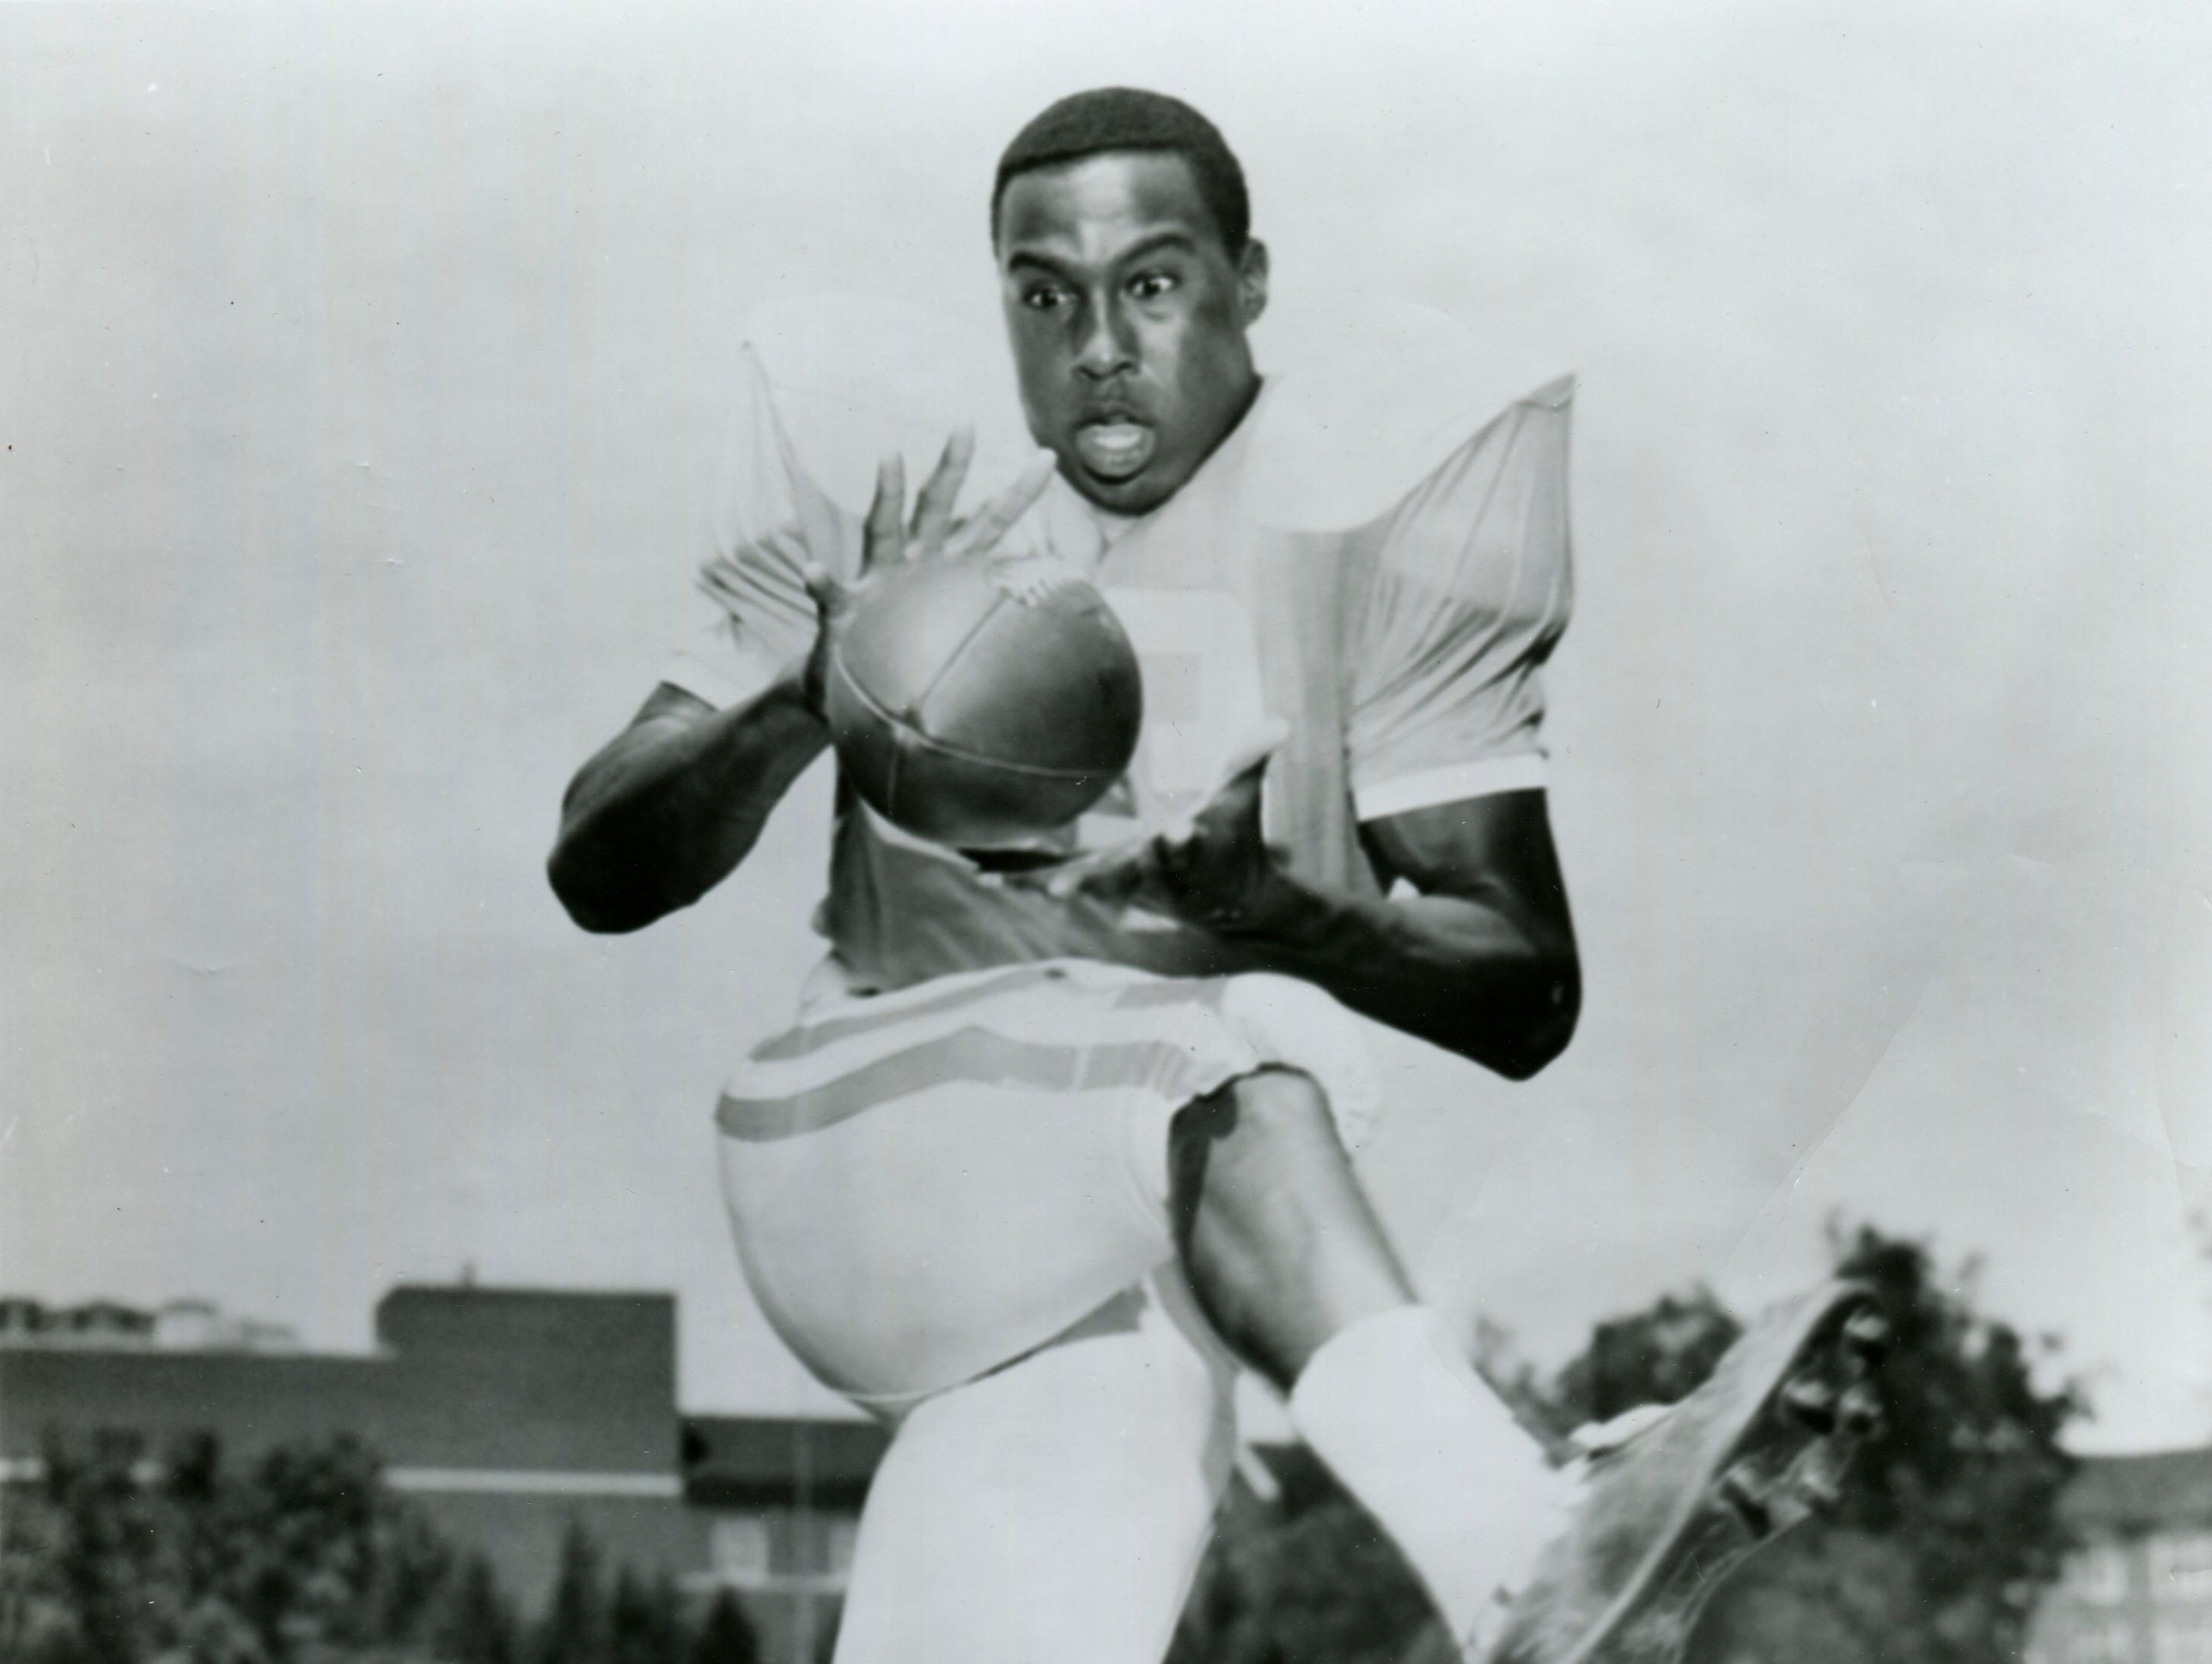 Lester McClain, the first black athlete to play football for the University of Tennessee. The wingback caught 70 passes for 1,003 yards and 10 touchdowns in three seasons.